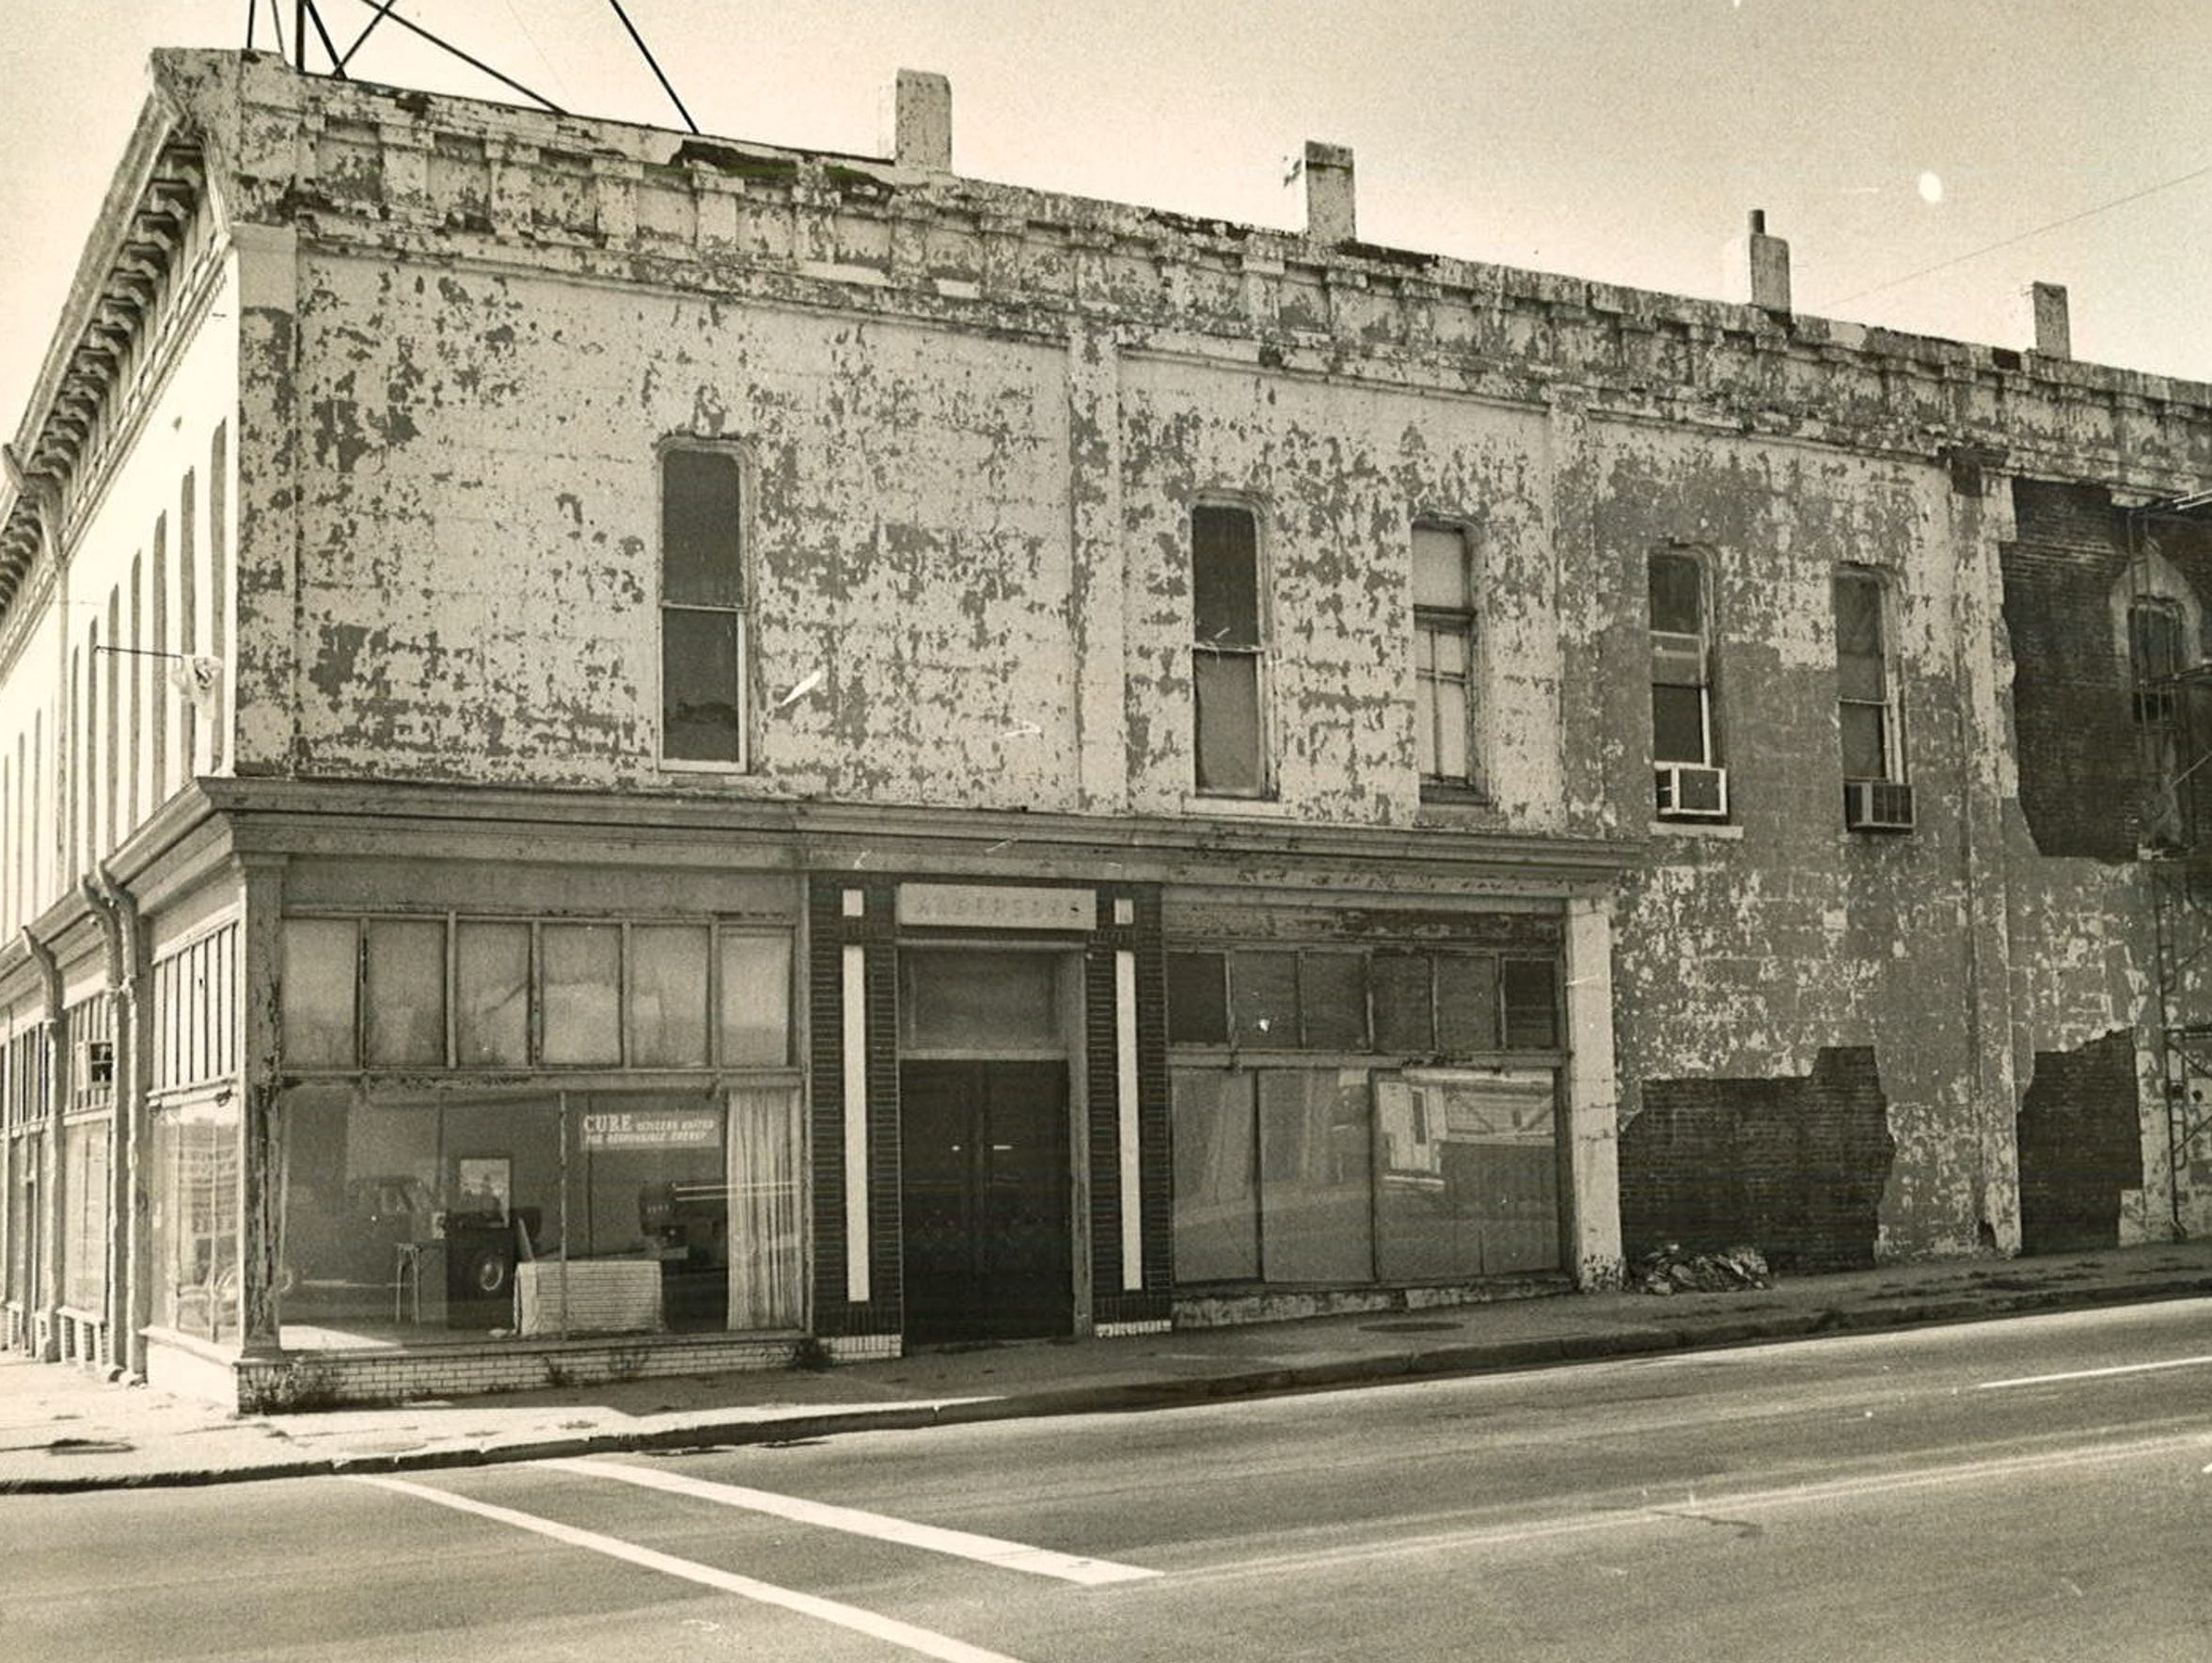 This 1976 photos shows Jim Boyt's building at East